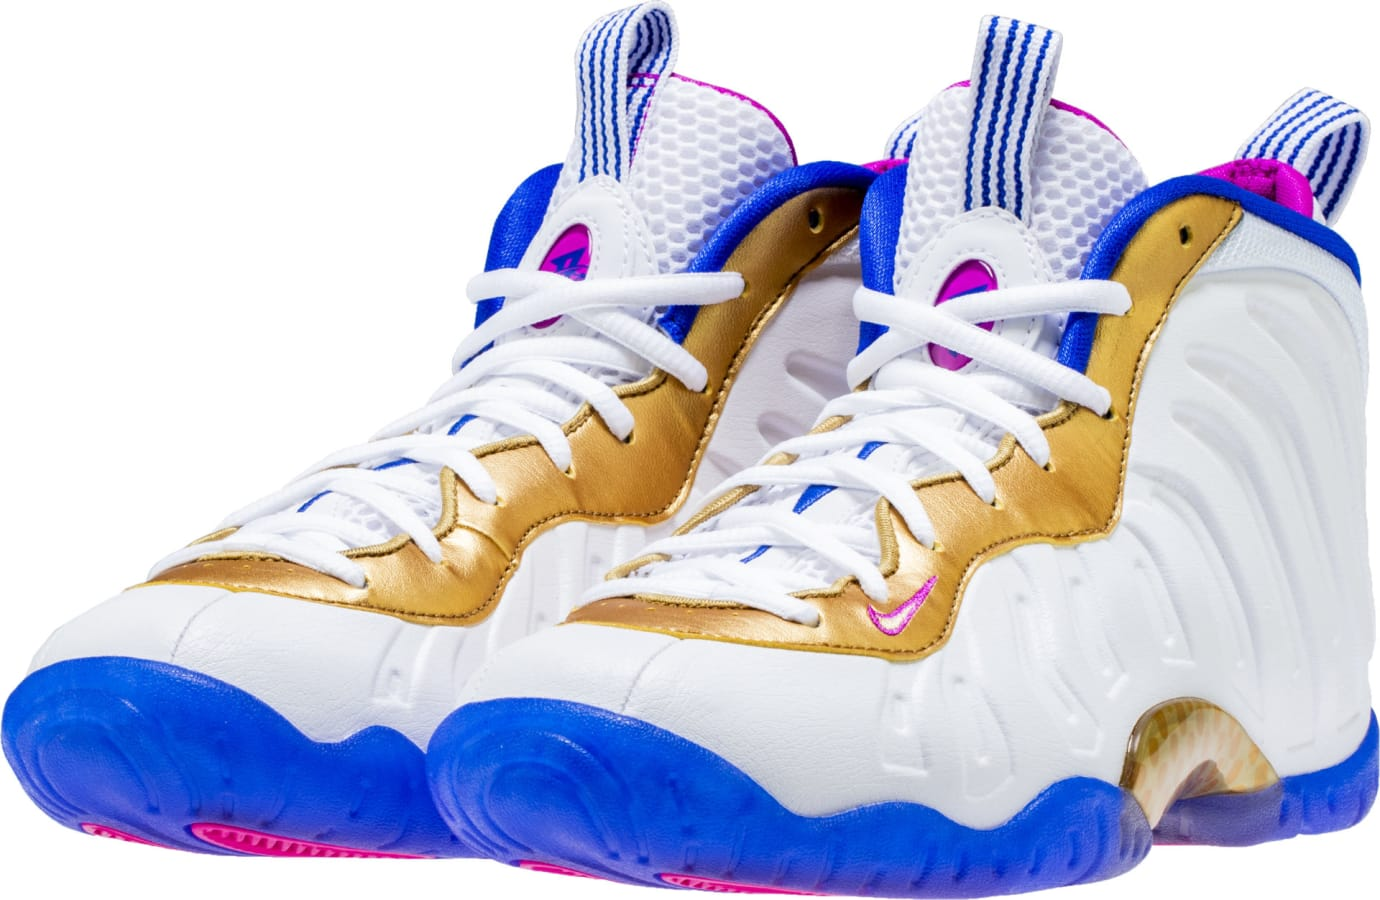 buy popular cdd89 2f02e ... air foamposite one pearlized pink 25100101 a2fa7 f6f23  ireland nike  little posite one white fuchsia blast racer blue metallic gold release date  644791 ...